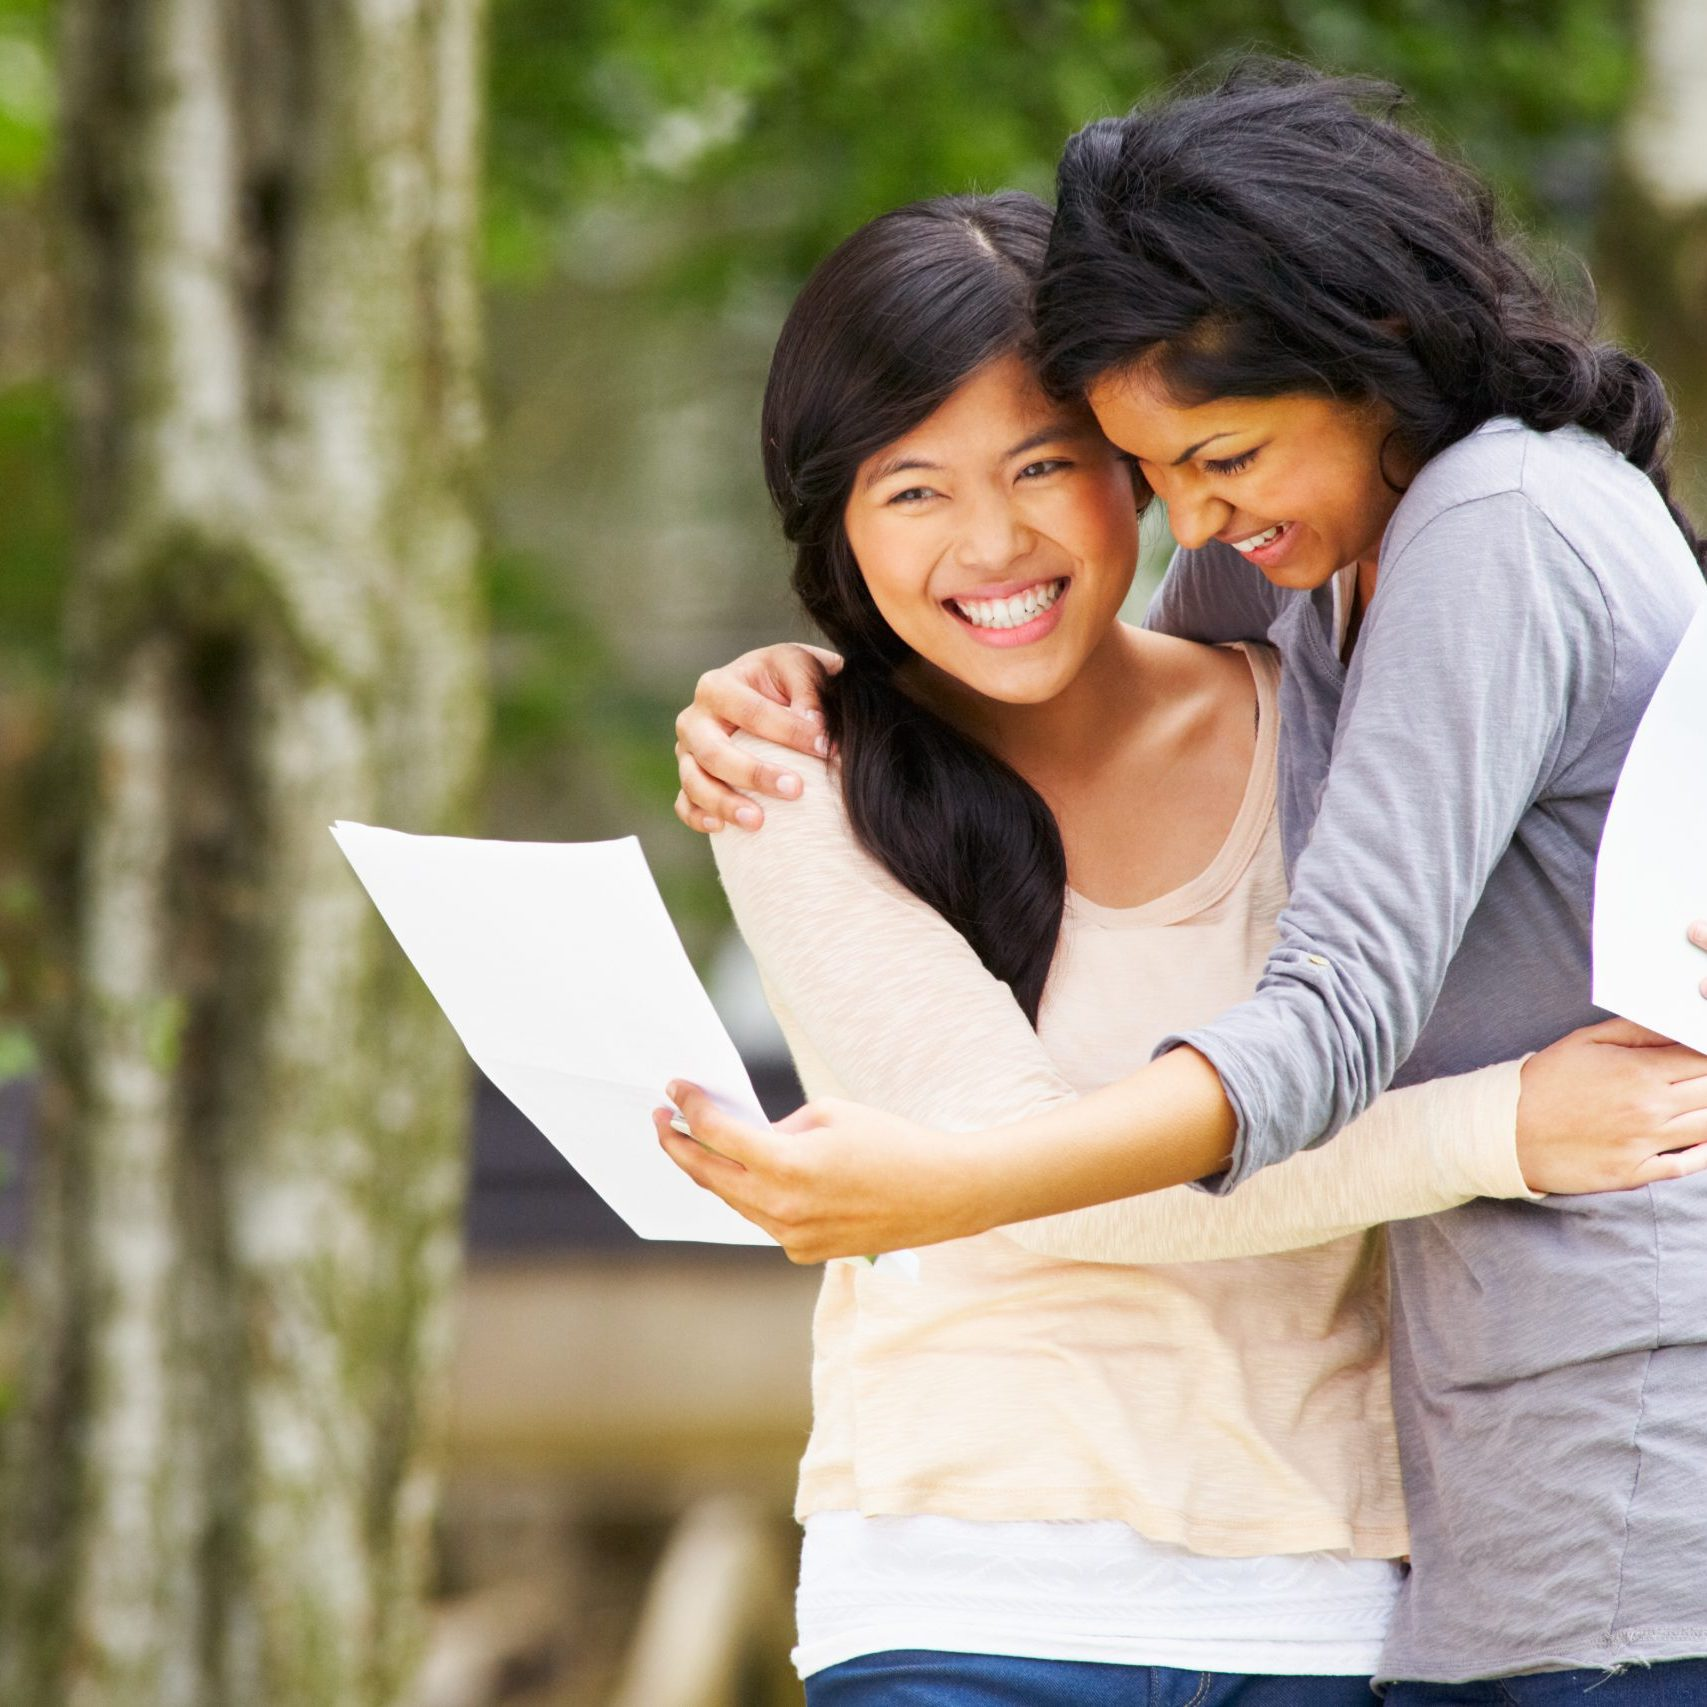 Two Teenage Girls Celebrating Successful Exam Results And Hugging